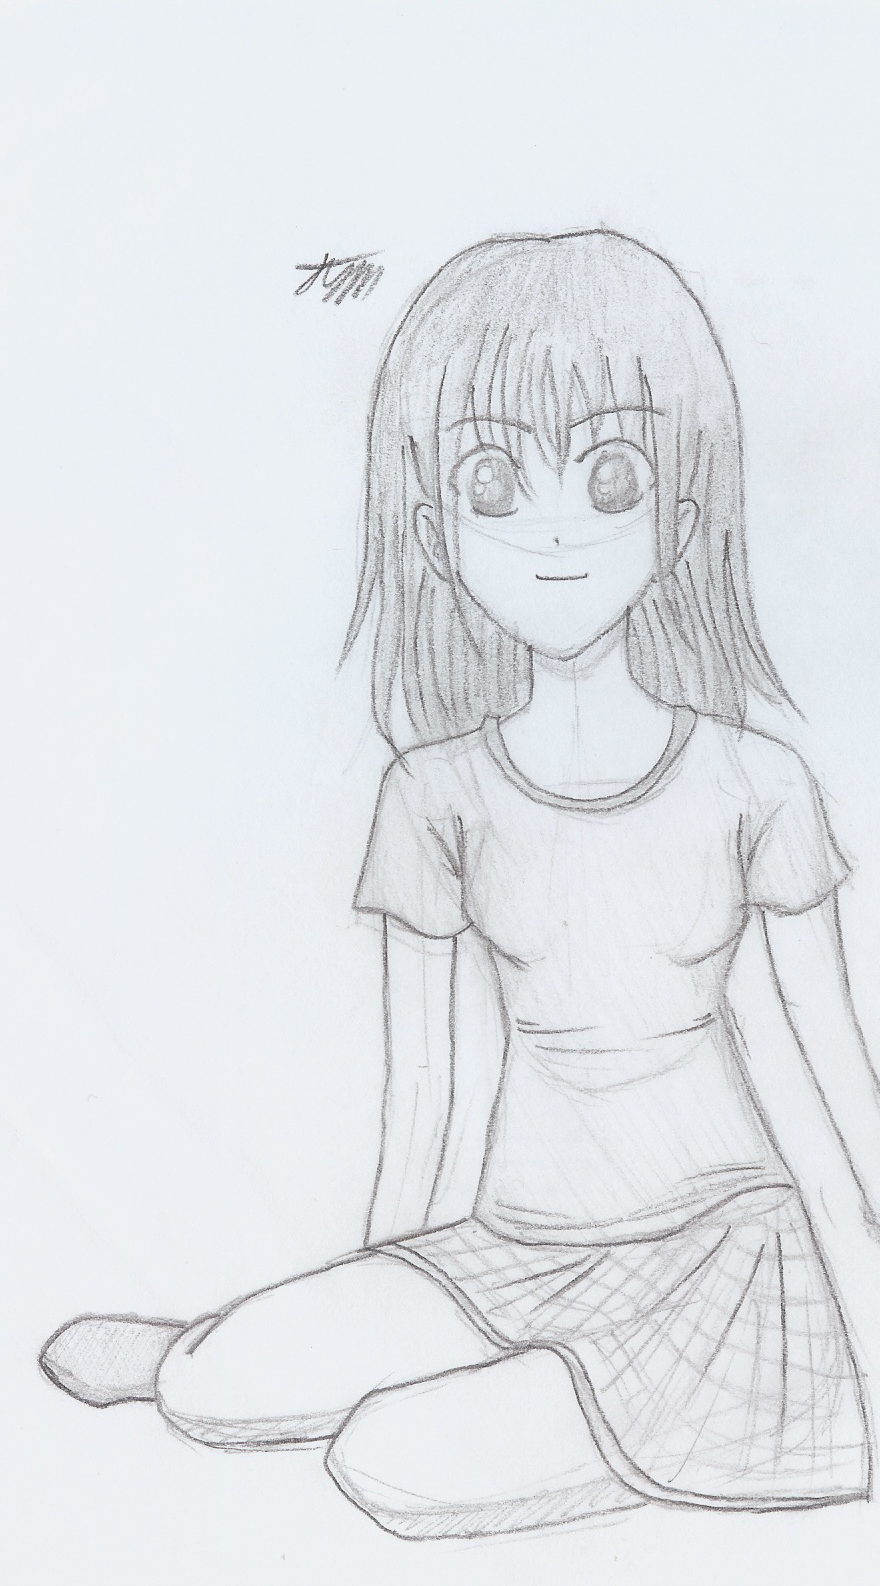 How To Draw Anime Girl Sitting Down